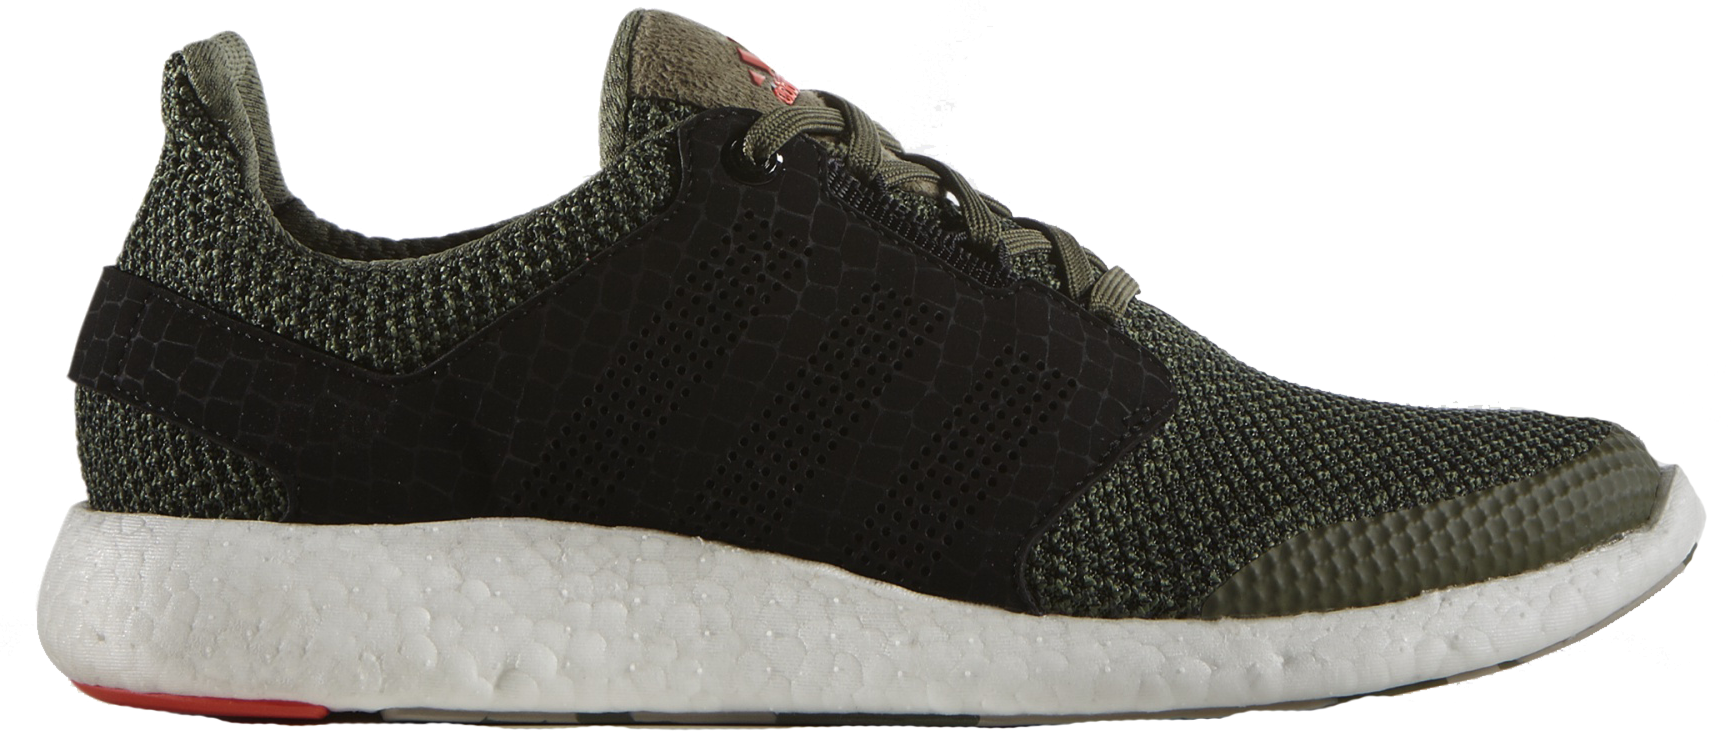 a94930e95 discount buy adidas pure boost 2 edda9 f235d